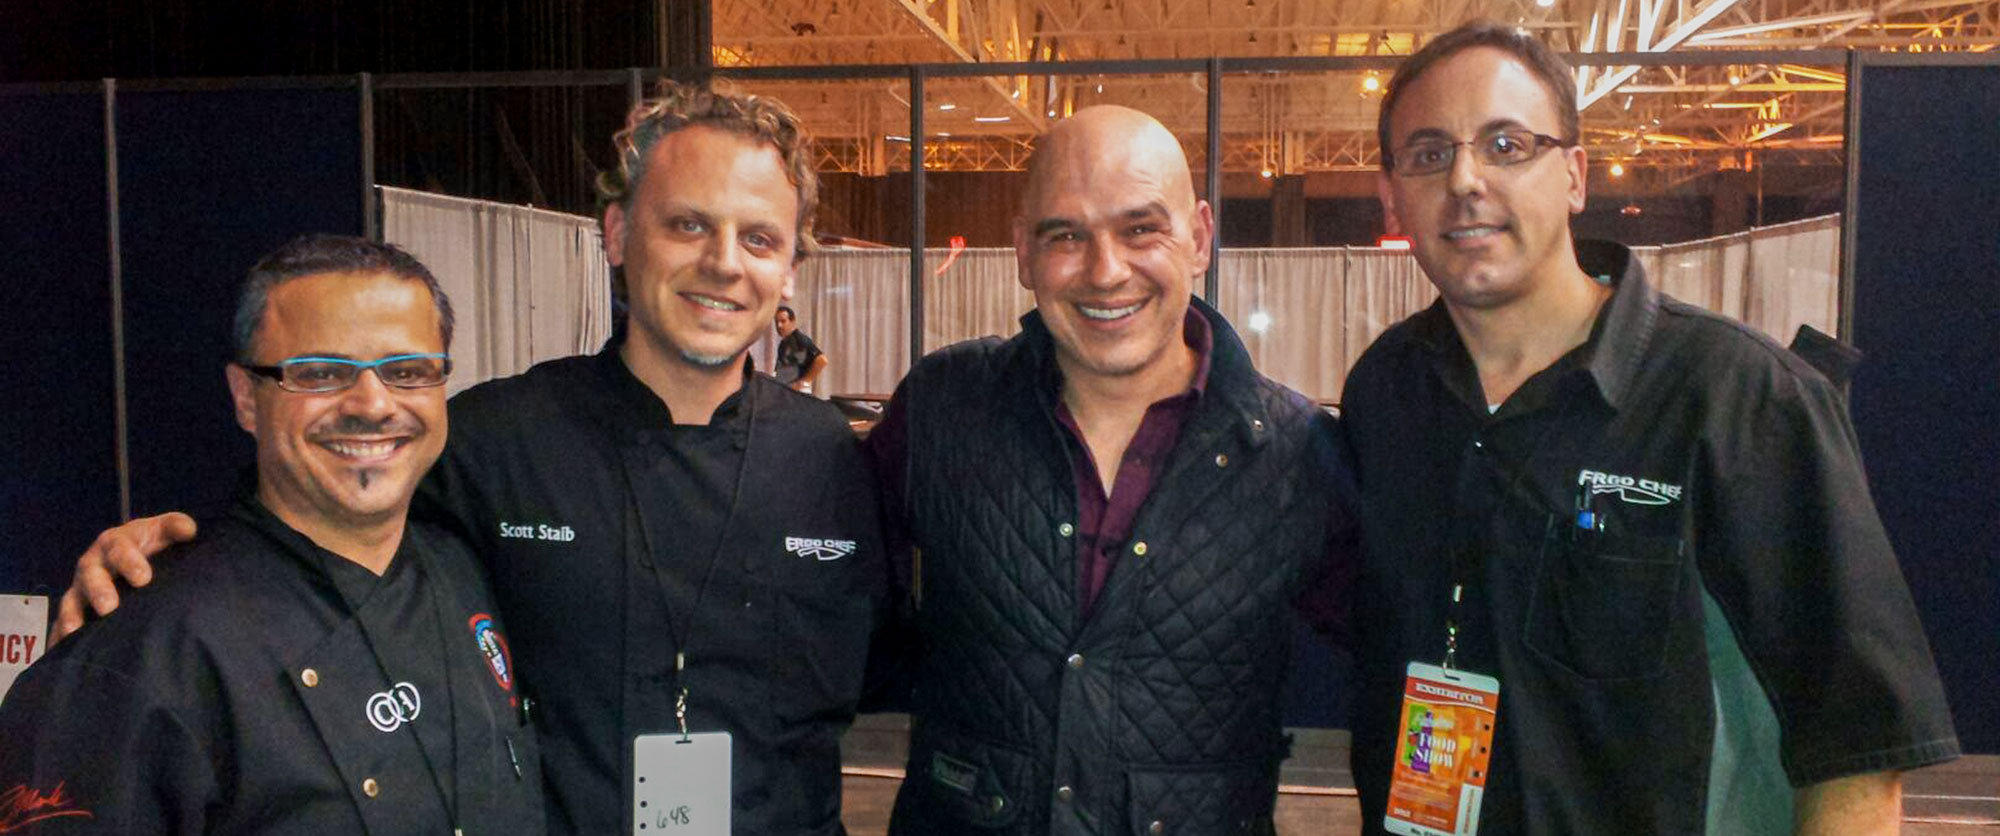 Ergo Chef and Michael Symon in Cleveland